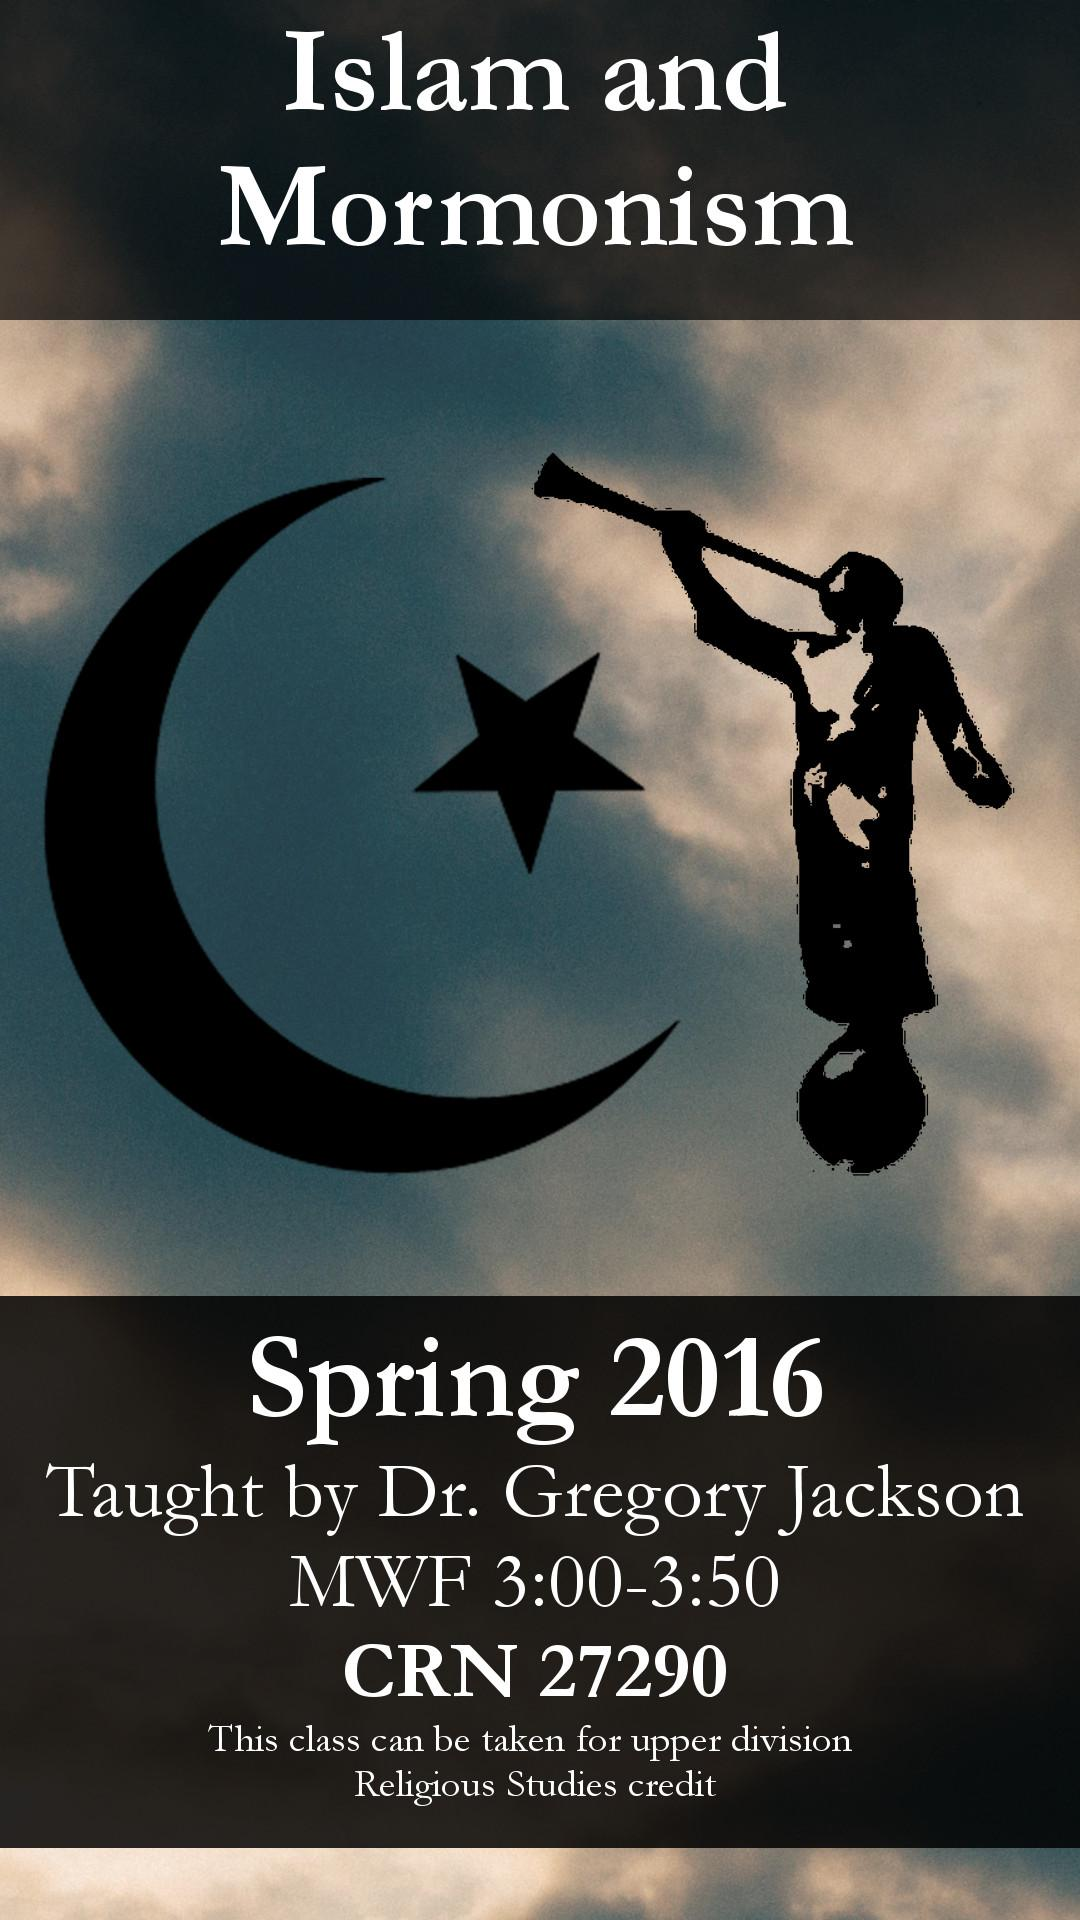 Islam and Mormonism